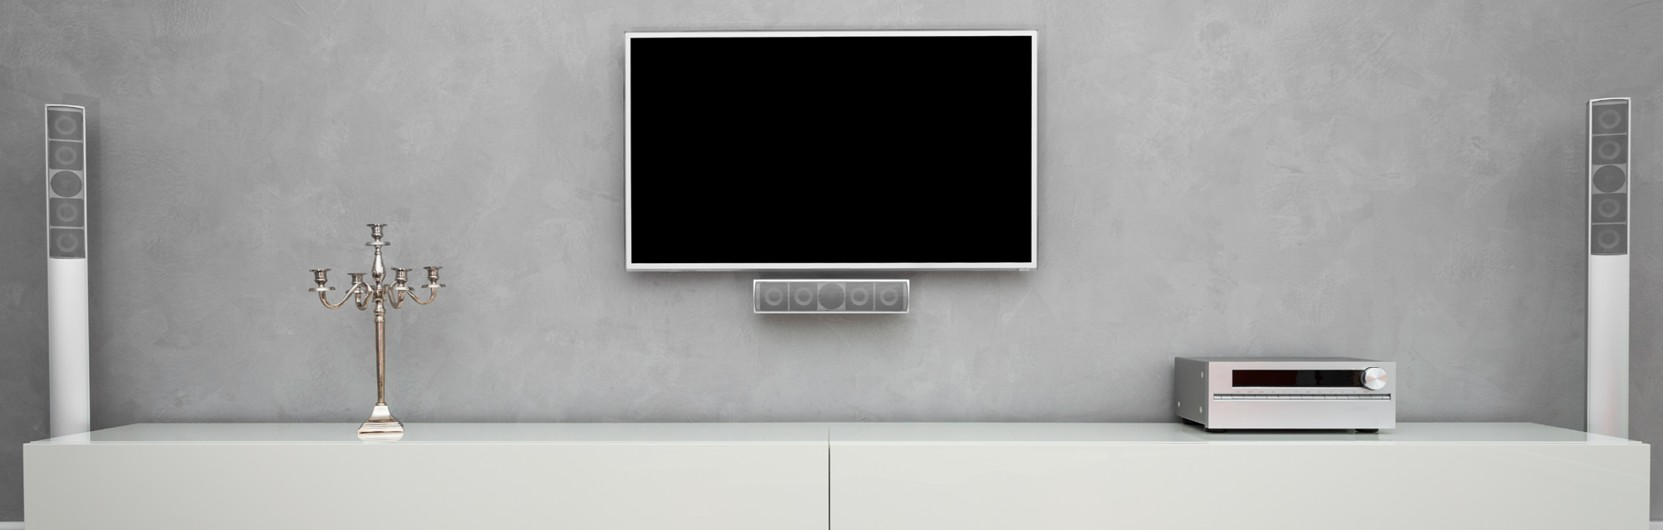 Electrical-kitchen_tv